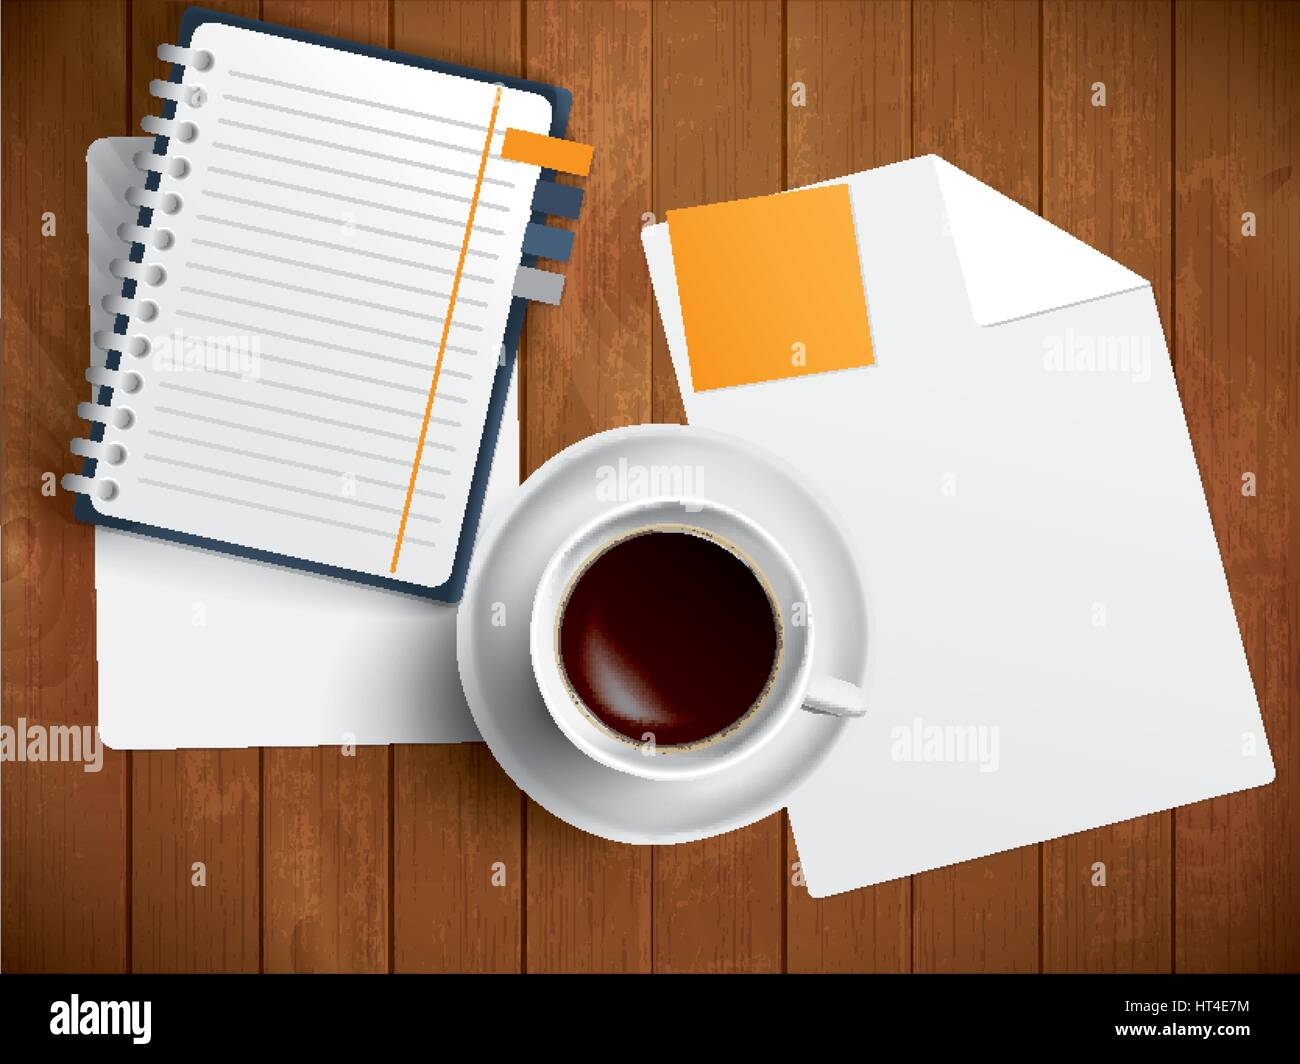 Coffee, notebook and paper on wooden table, vector illustration - Stock Vector